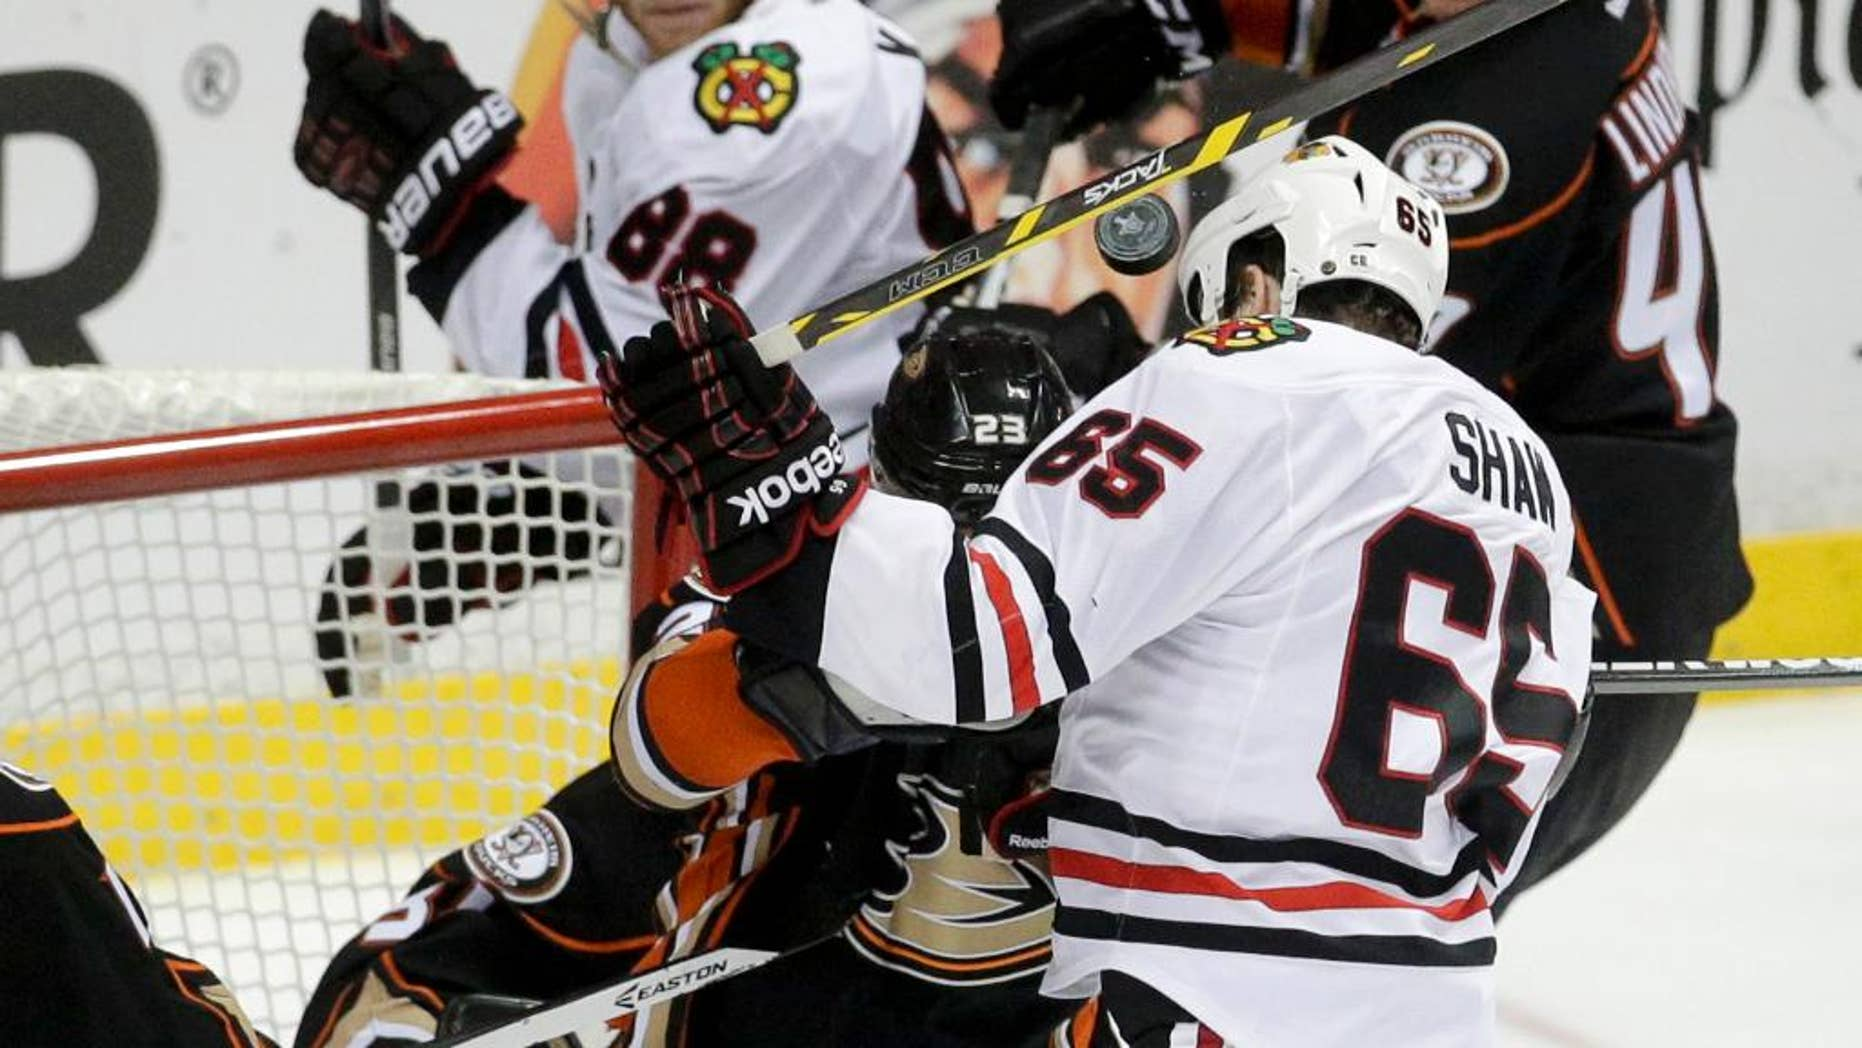 Chicago Blackhawks center Andrew Shaw head-butts the puck into the goal during overtime in Game 2 of the Western Conference final during the NHL hockey Stanley Cup playoffs against the Anaheim Ducks in Anaheim, Calif., on Tuesday, May 19, 2015. The apparent goal was disallowed. (AP Photo/Jae C. Hong)